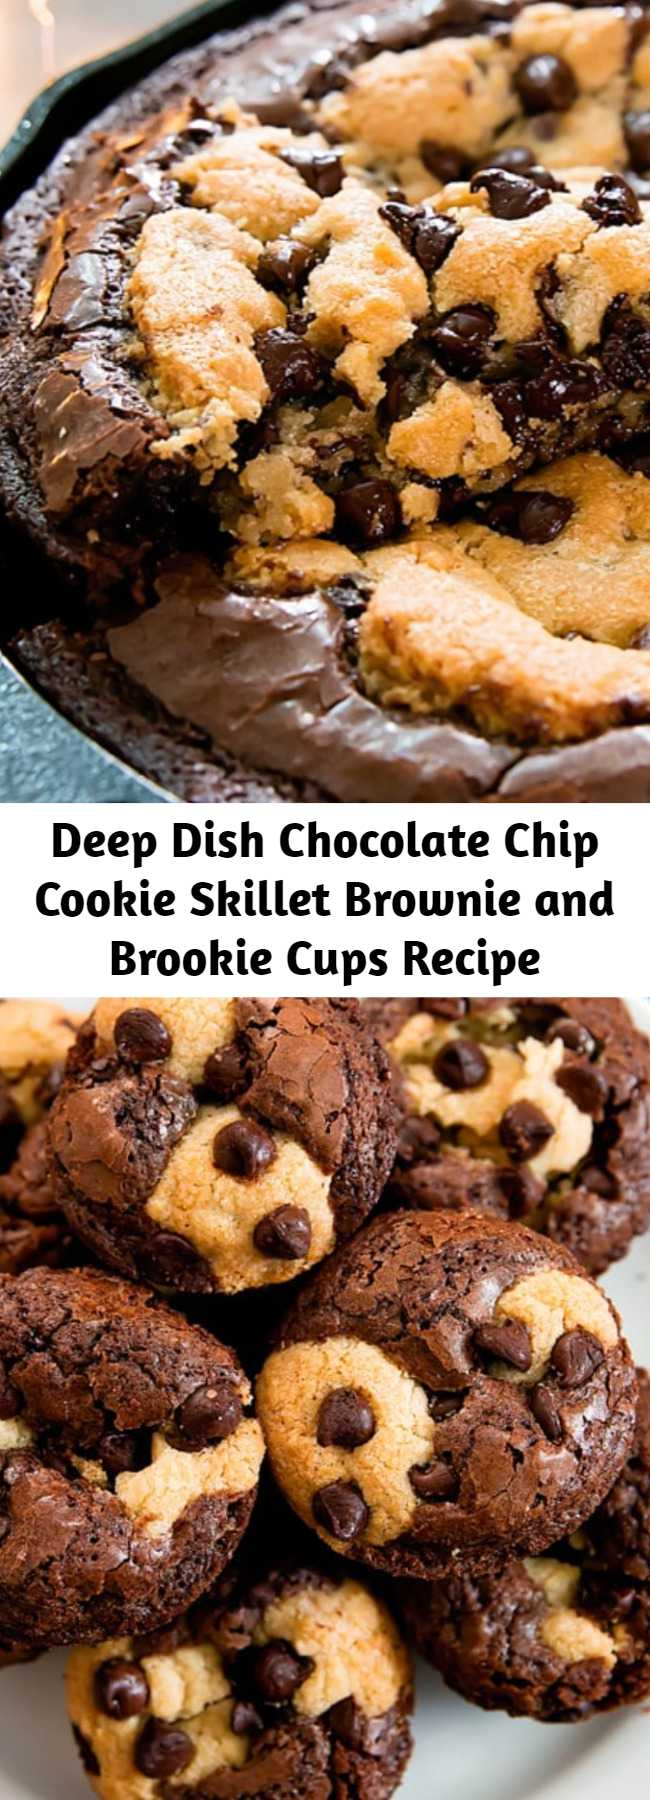 Deep Dish Chocolate Chip Cookie Skillet Brownie and Brookie Cups Recipe - Fudgy brownies and chocolate chip cookies are combined into one in these fun desserts so that you don't have to choose. My Deep Dish Chocolate Chip Cookie Skillet Brownie has an outer skillet brownie layer with a deep chocolate chip cookie center. The result is a decadent, gooey dessert. Use the leftover batter to make brookie cups!